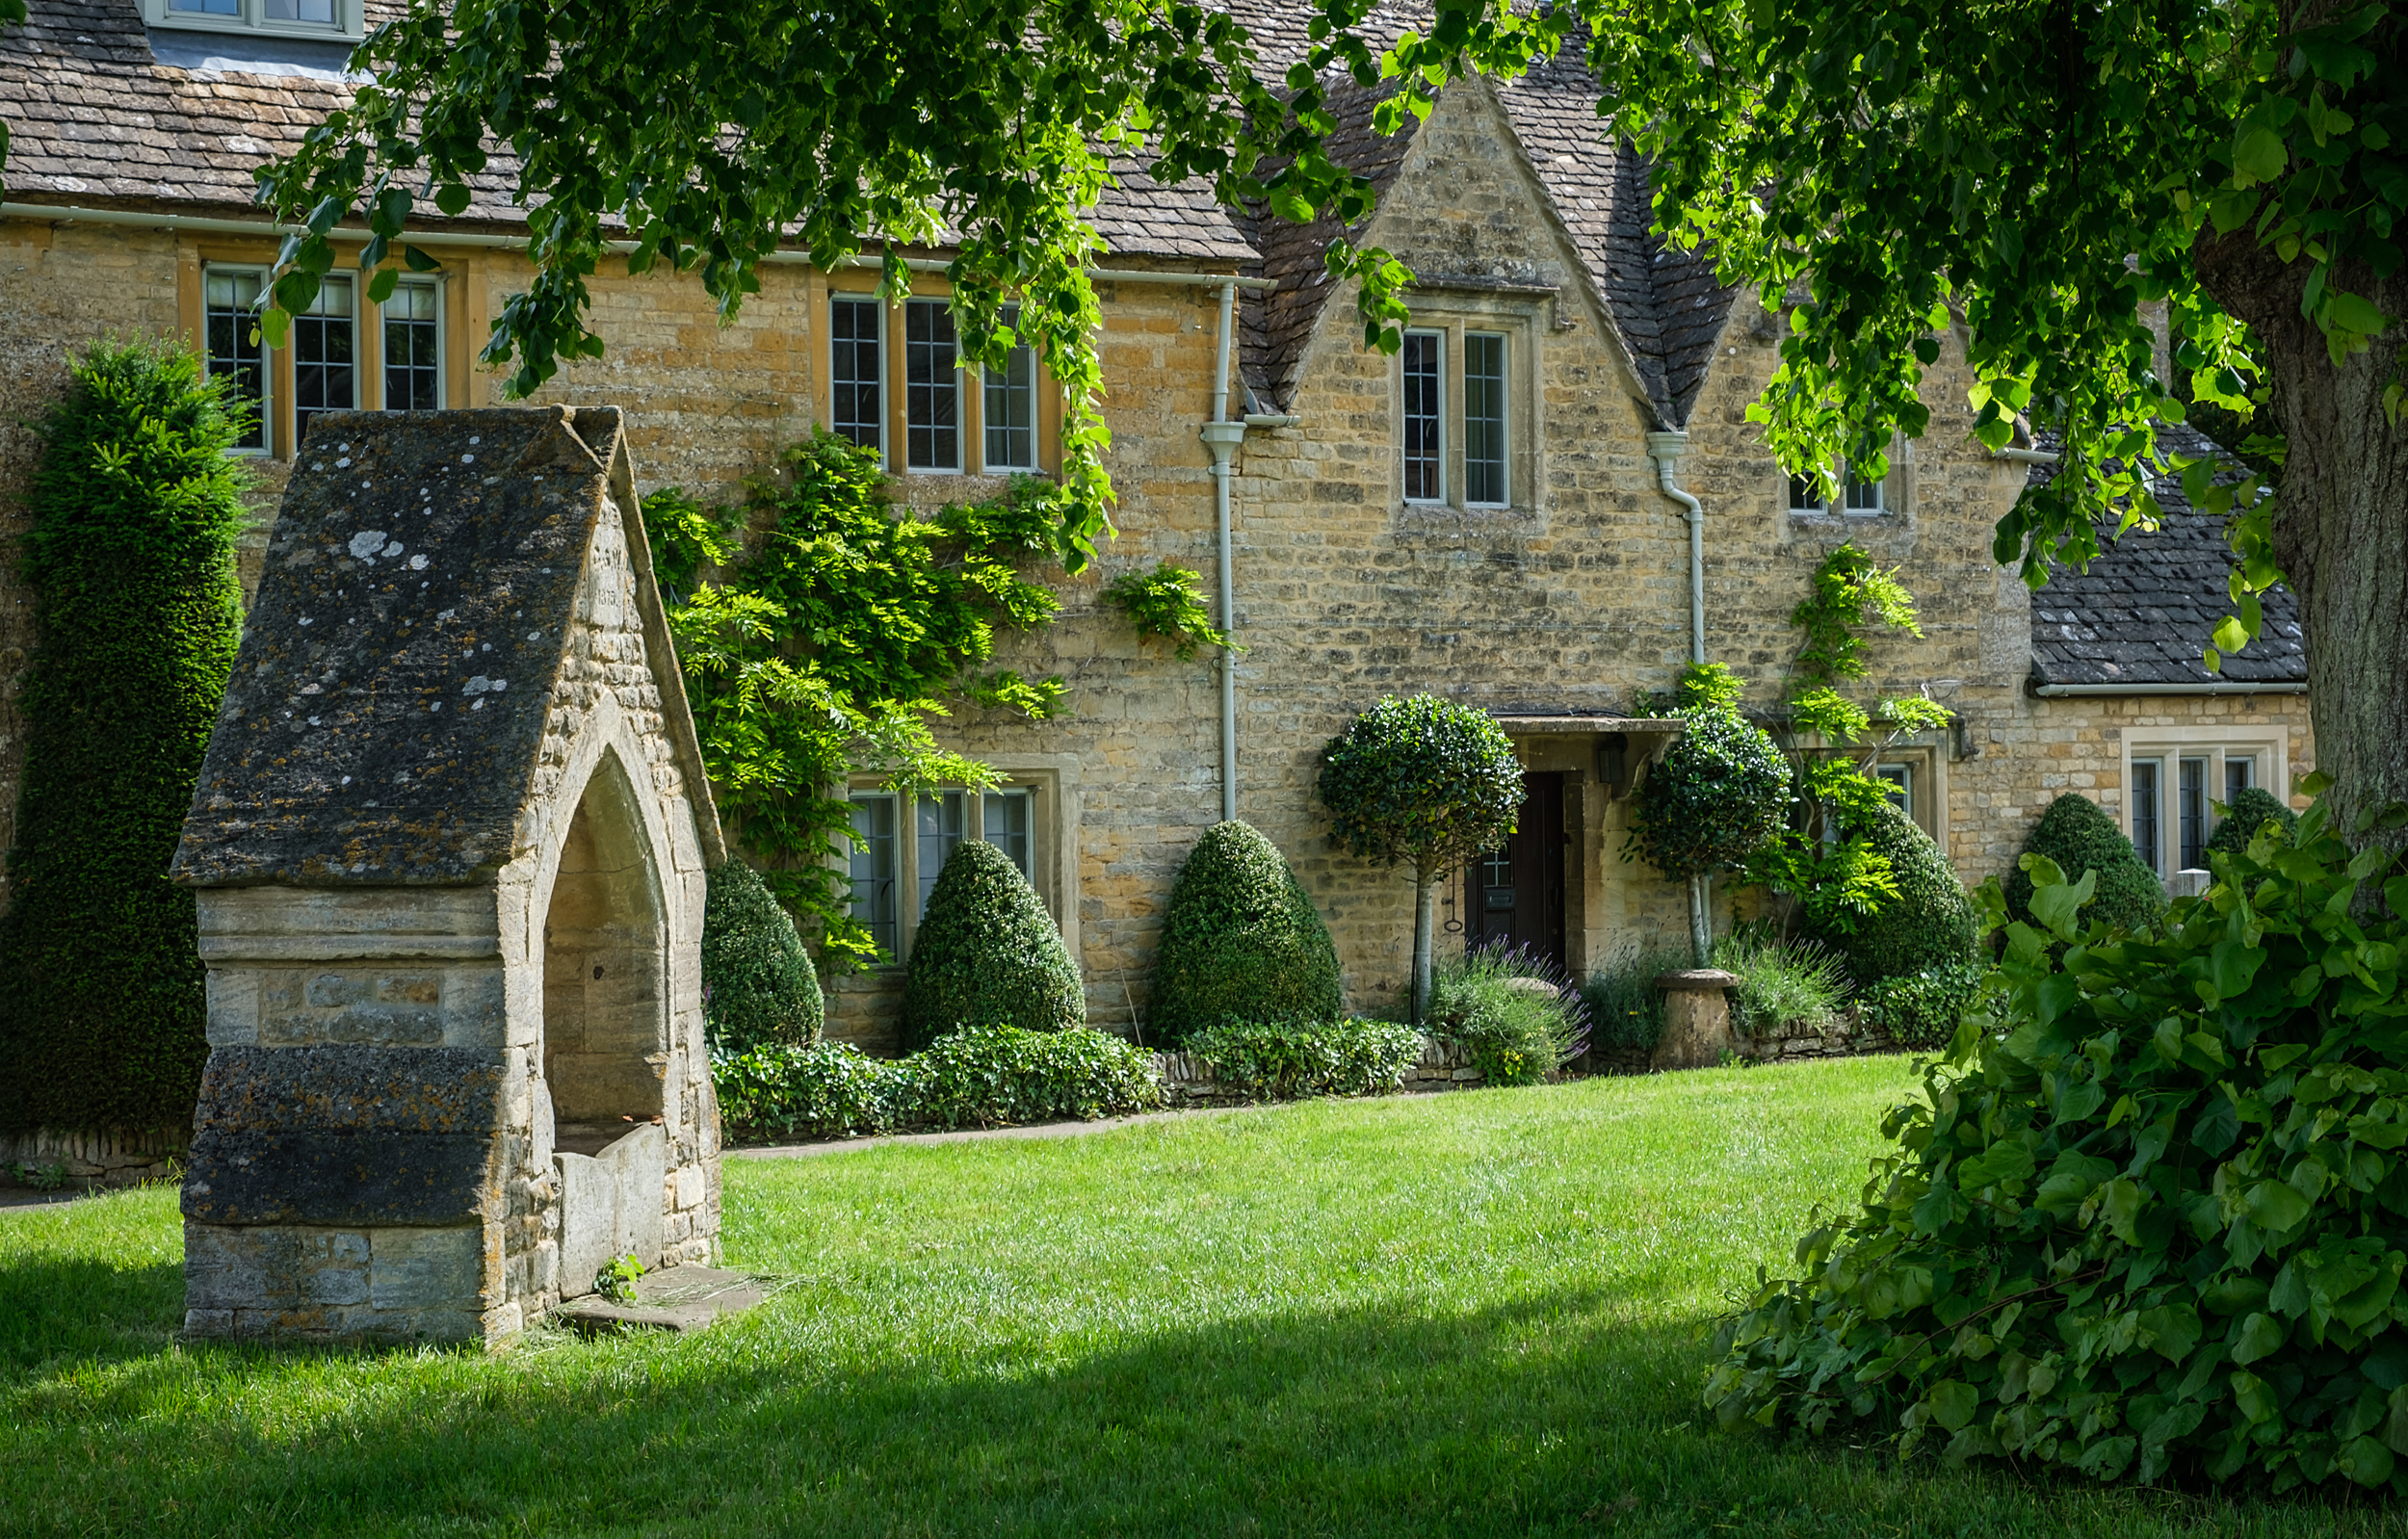 20190619_cotswolds-581-Edit.jpg